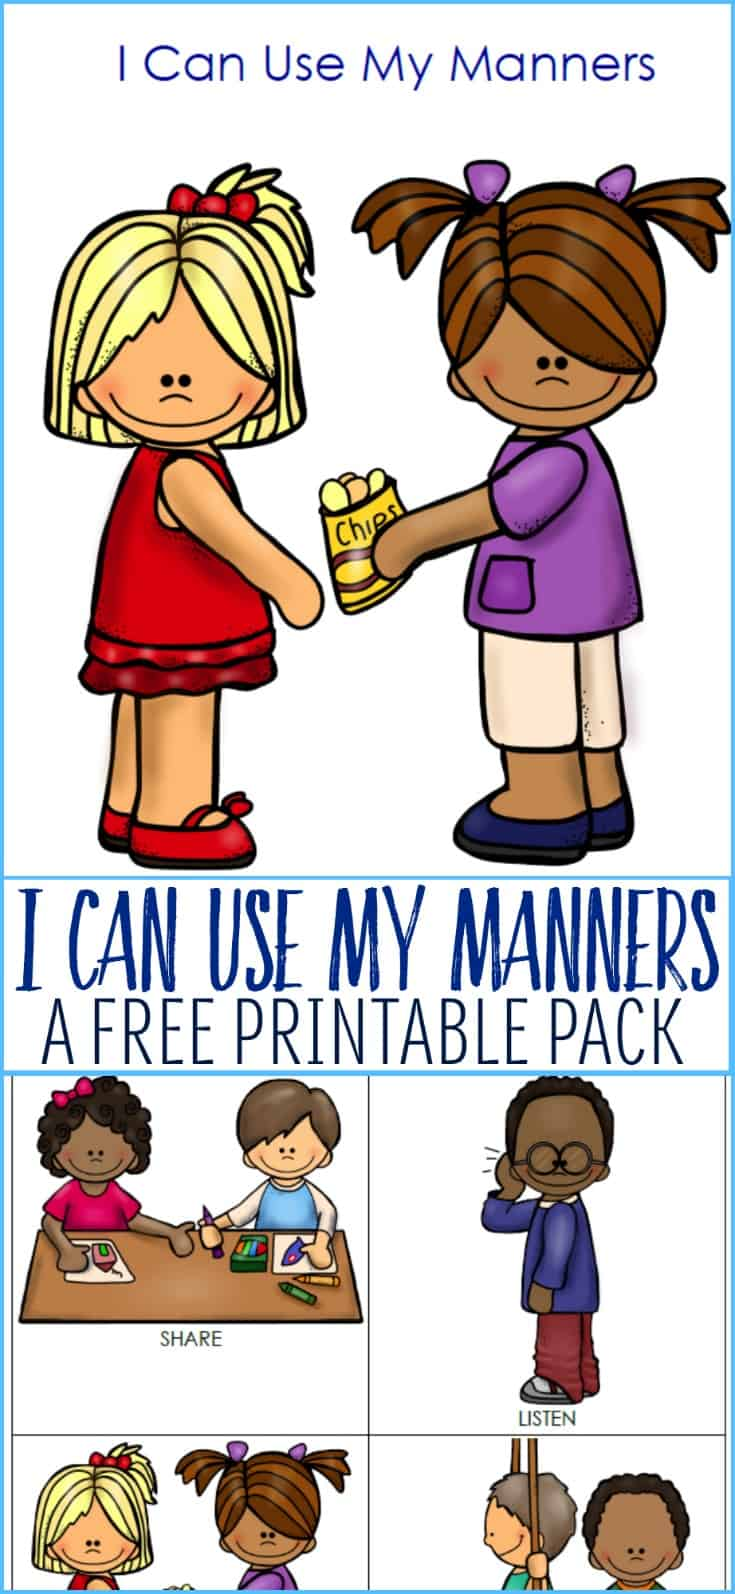 My Manners Printable Pack for Young Children